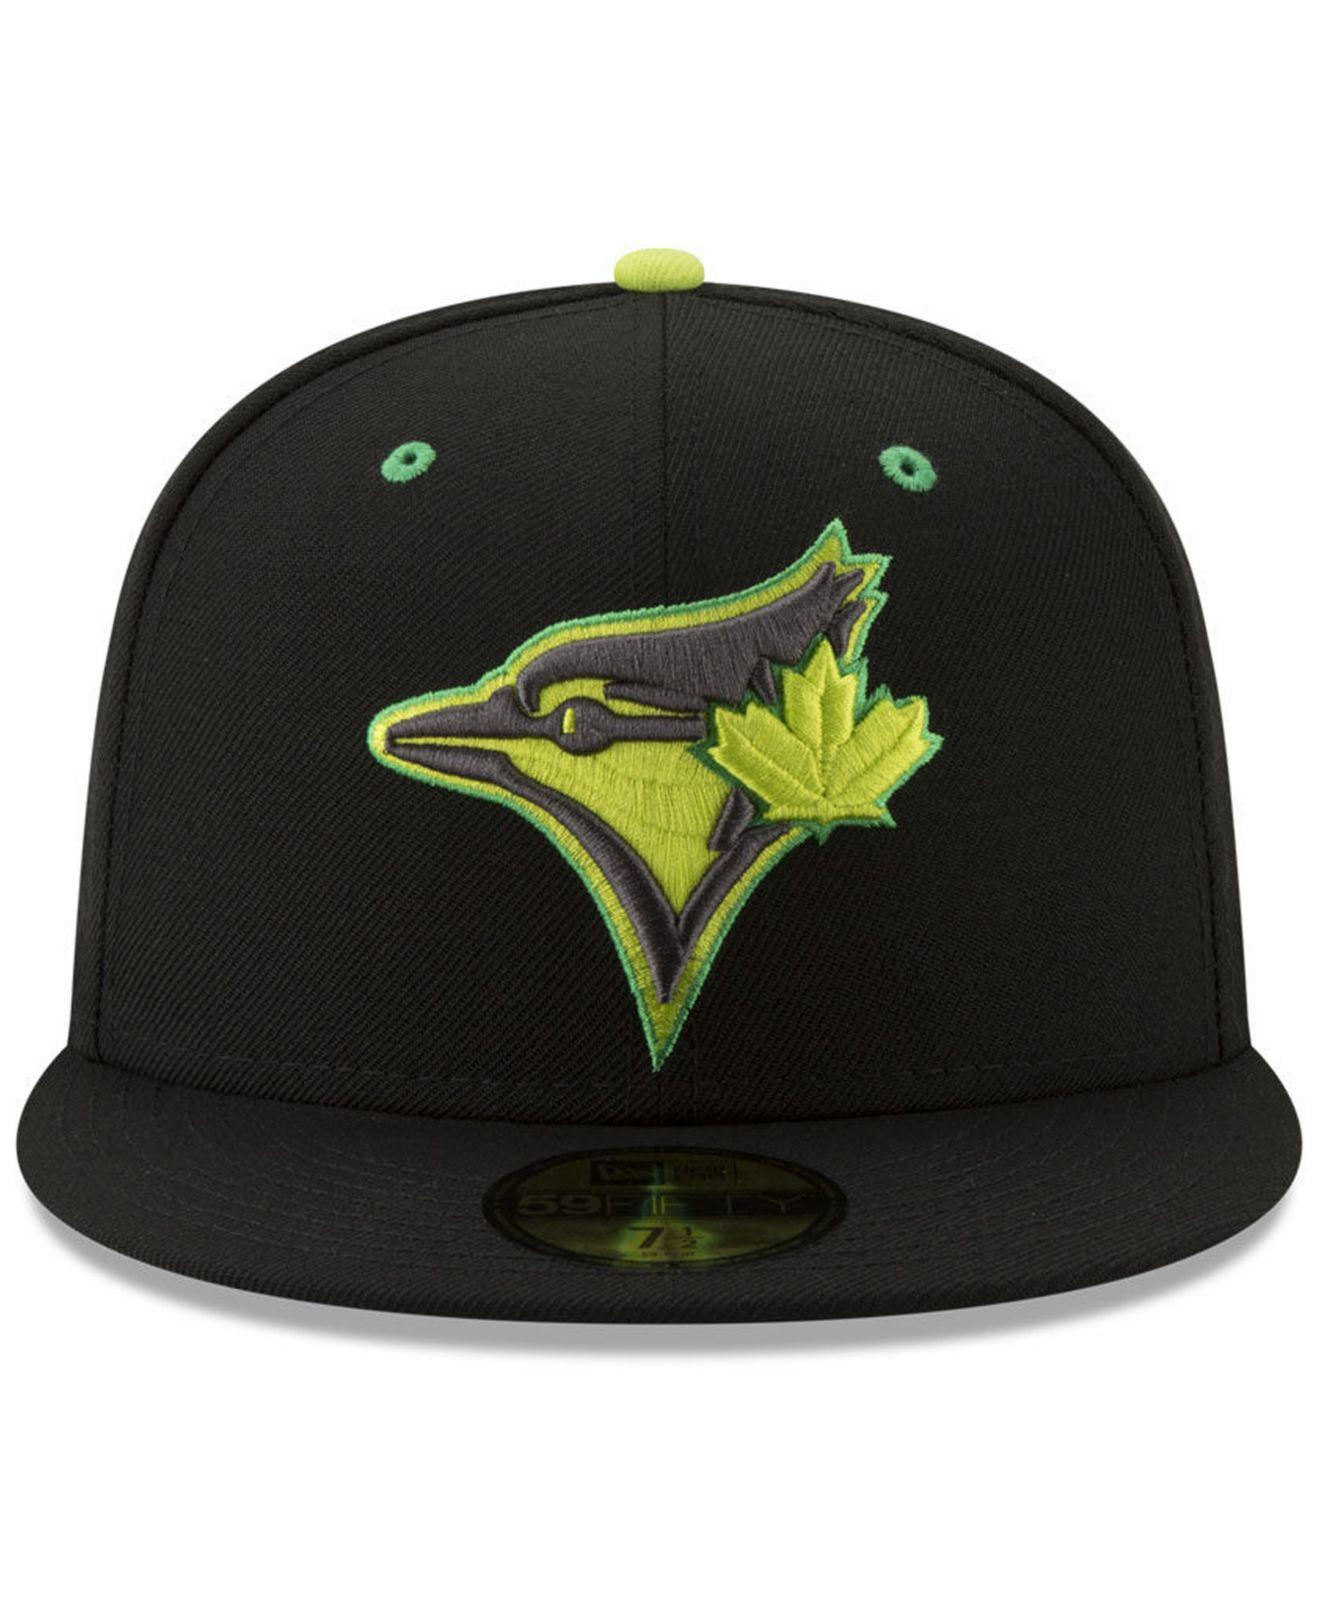 best website 20413 936ac Lyst - KTZ Toronto Blue Jays Night Moves 59fifty Fitted Cap in Black for Men